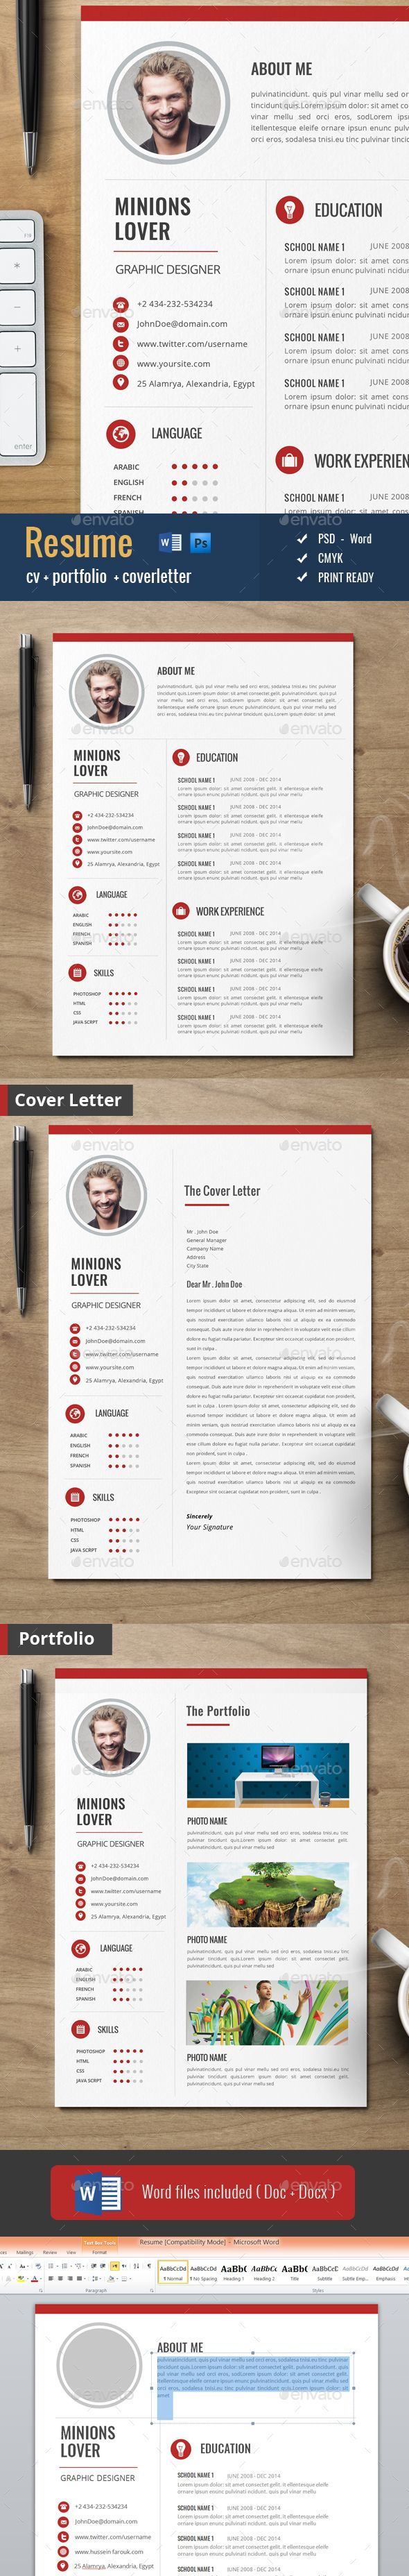 Best  Images On   Page Layout Resume Design And